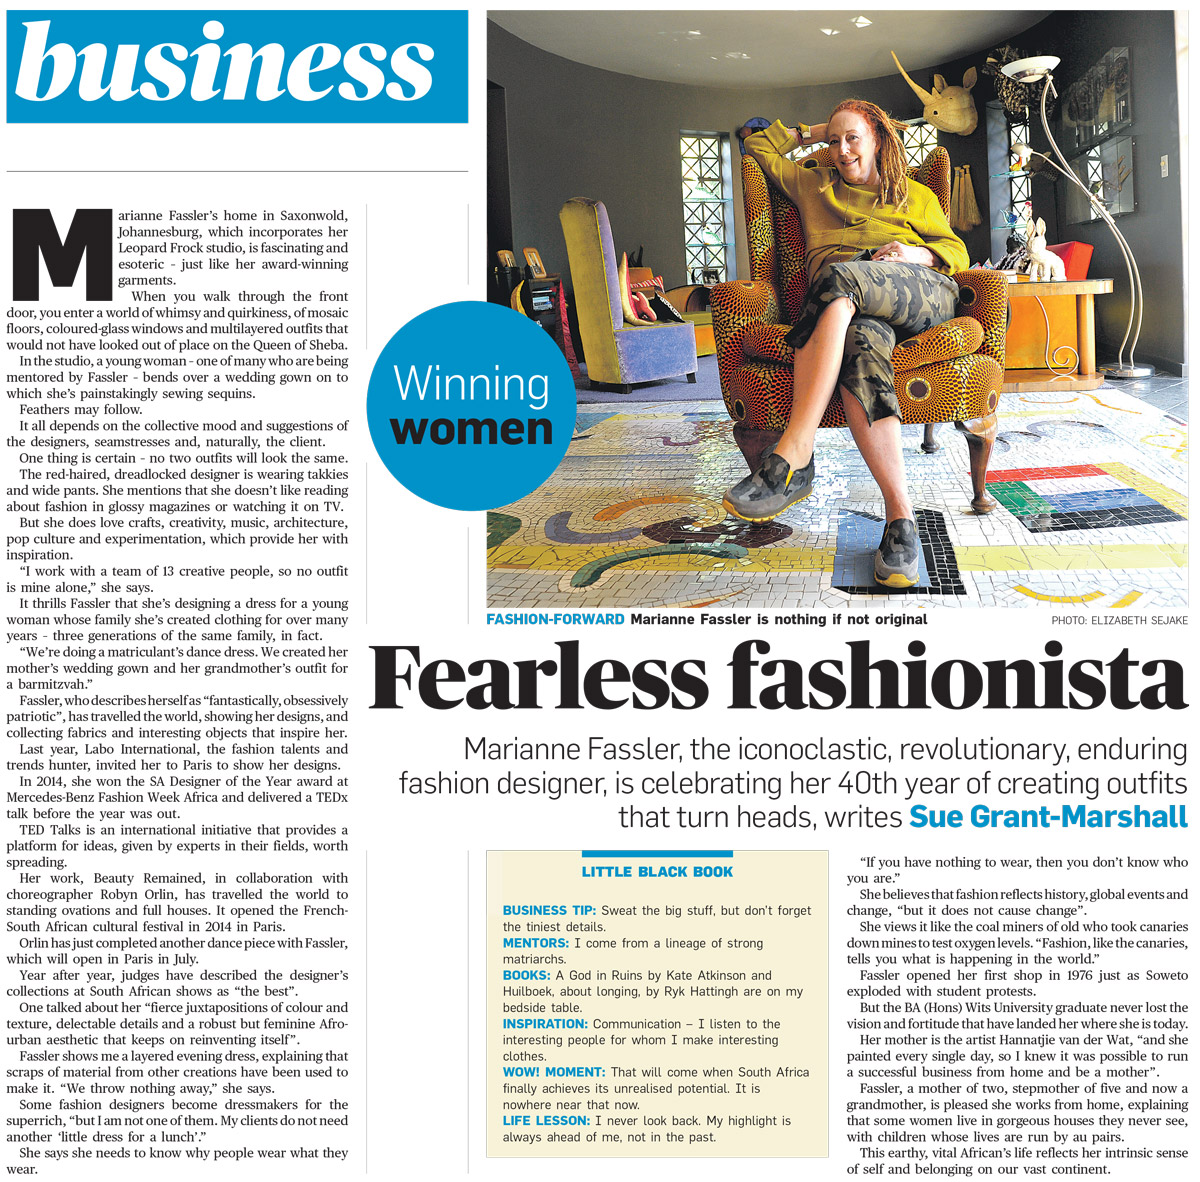 Fearless Fashionista in City Press